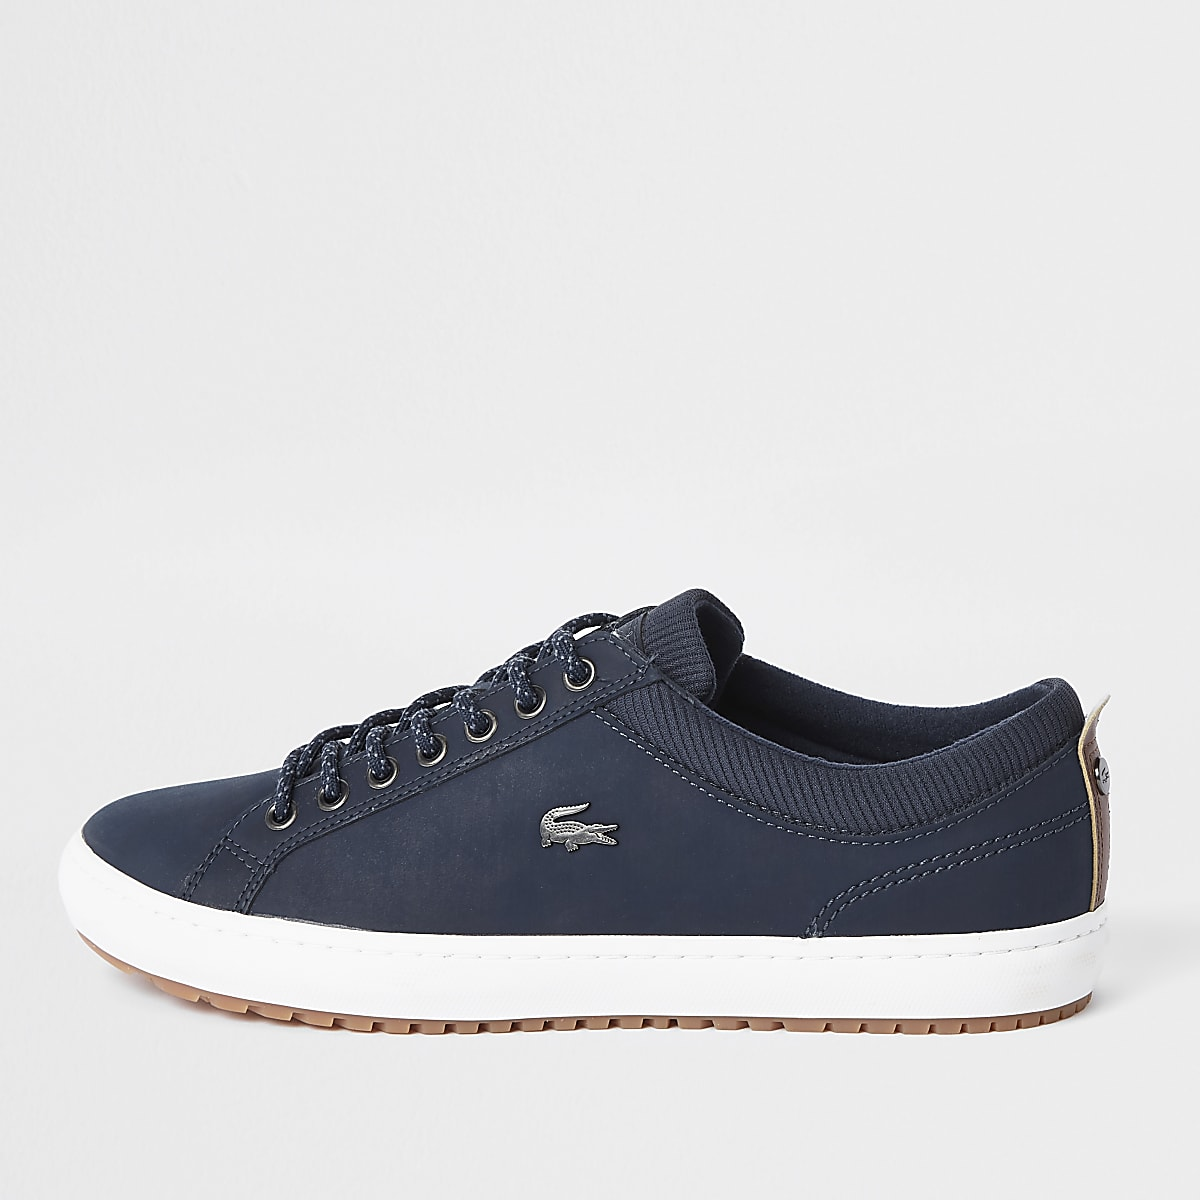 02533ecb0c2 Lacoste navy leather lace-up trainers - Trainers - Shoes   Boots - men